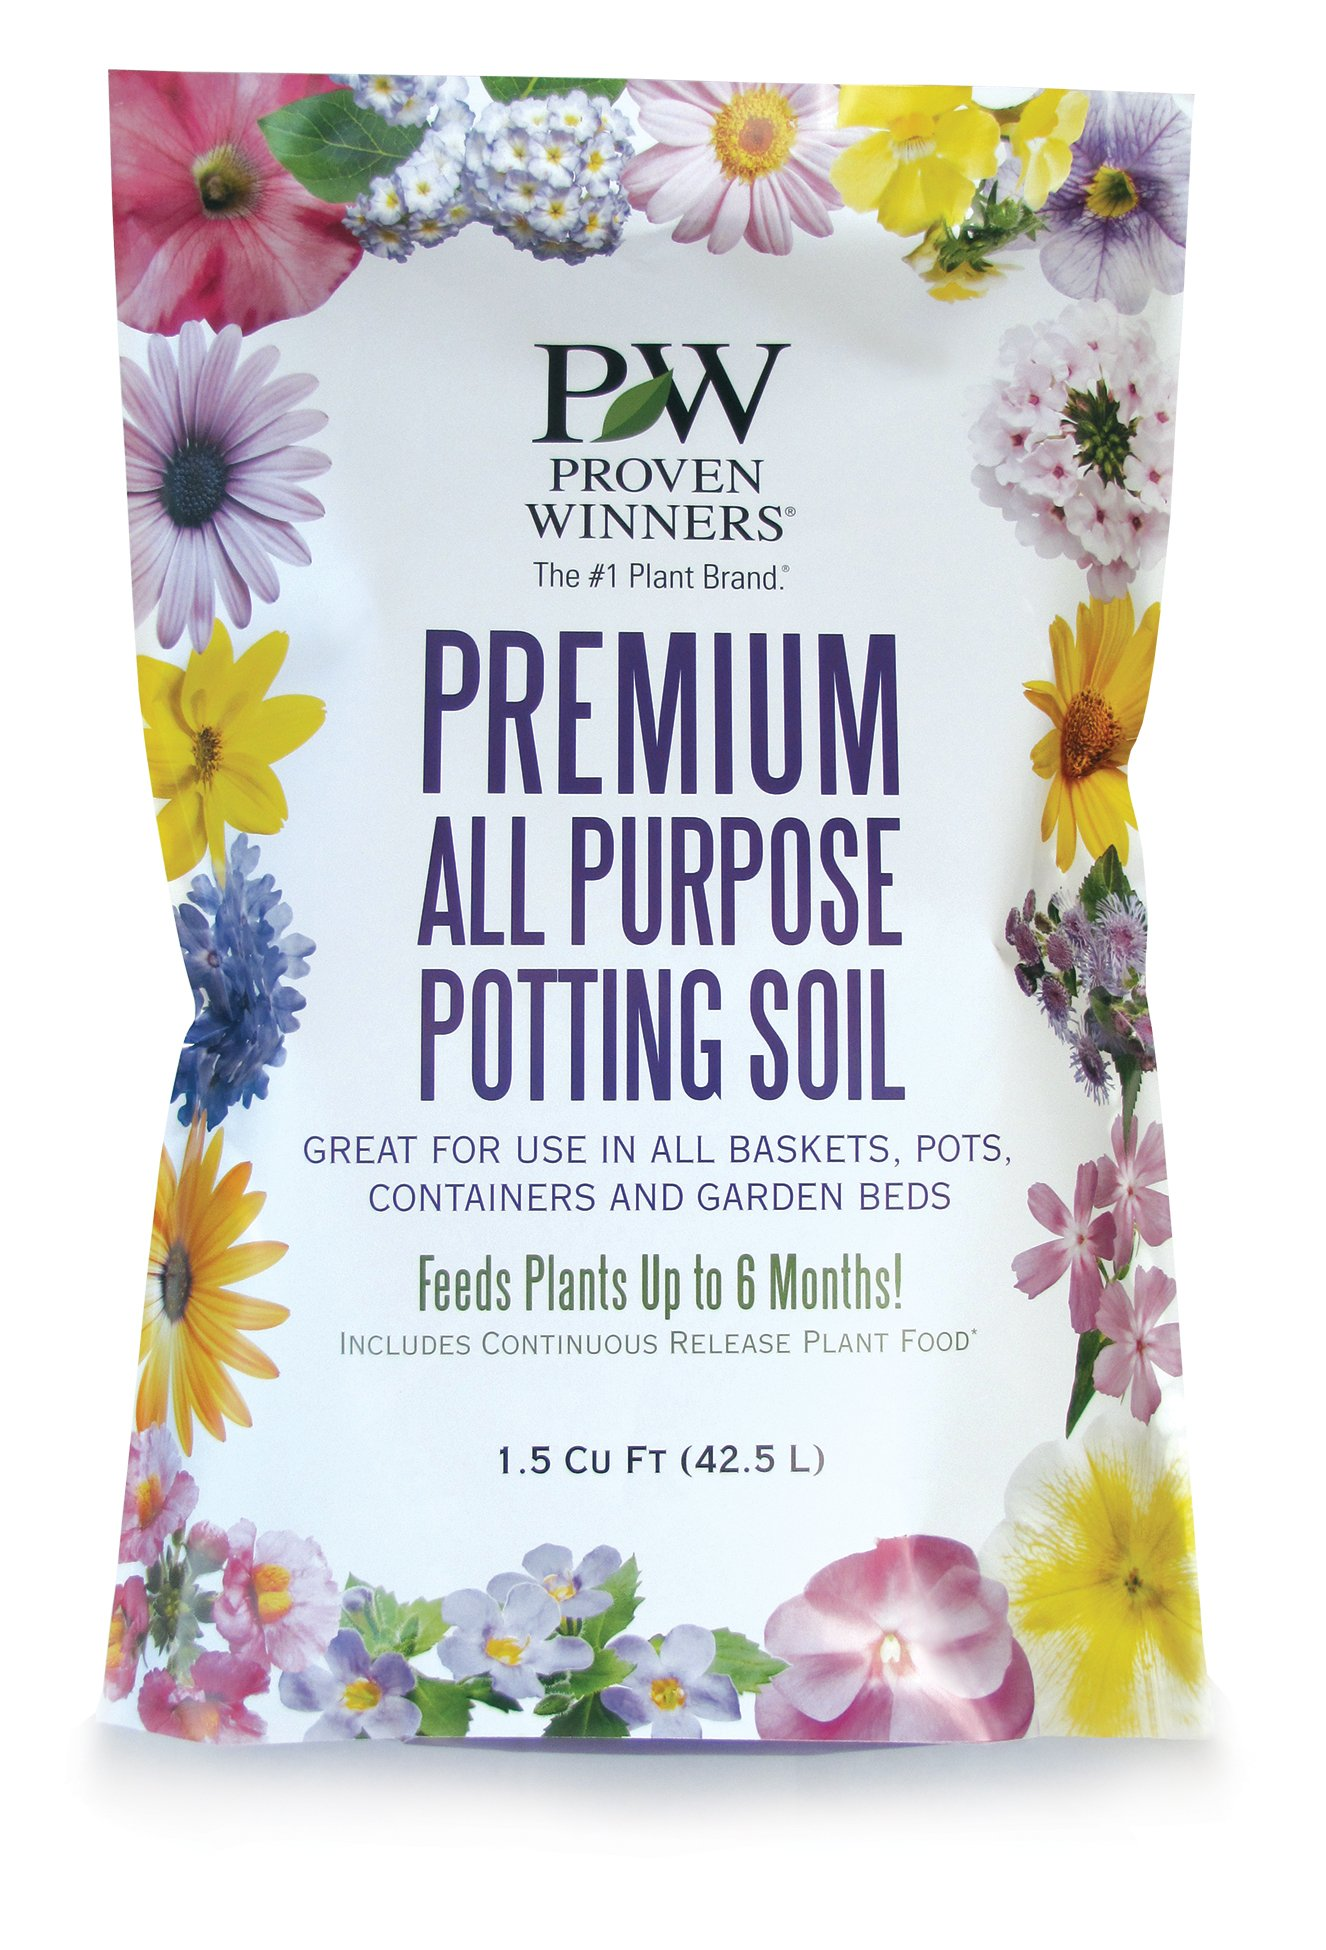 Premium All Purpose Potting Soil, 1.5 cu. ft. Bag by Proven Winners